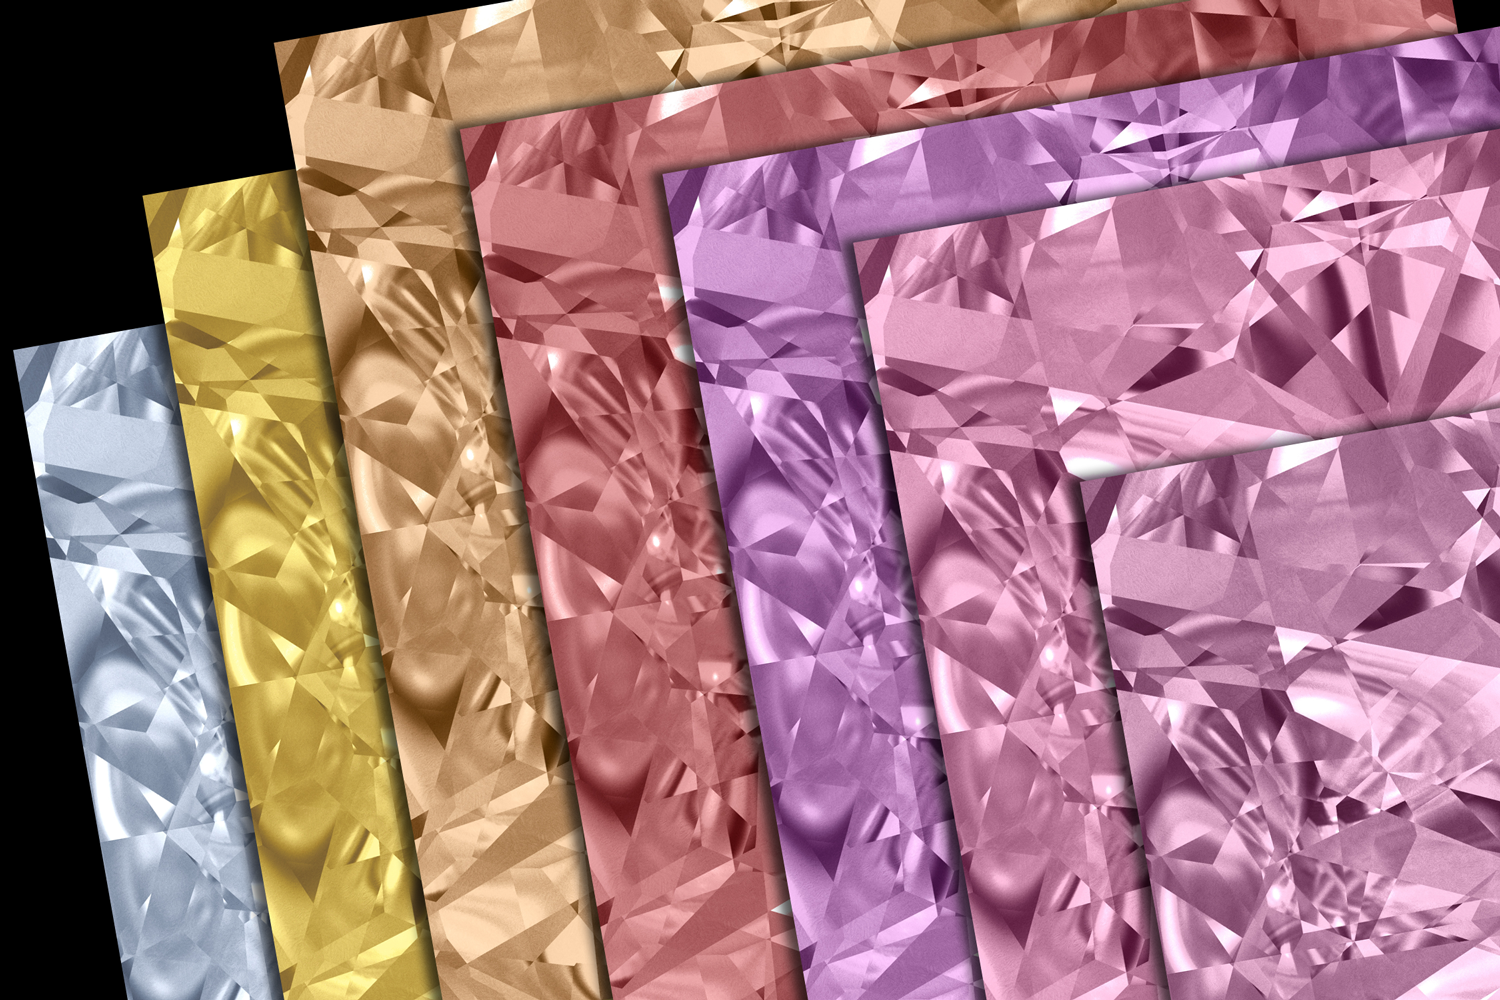 Gemstone Textures Pack 2 example image 2